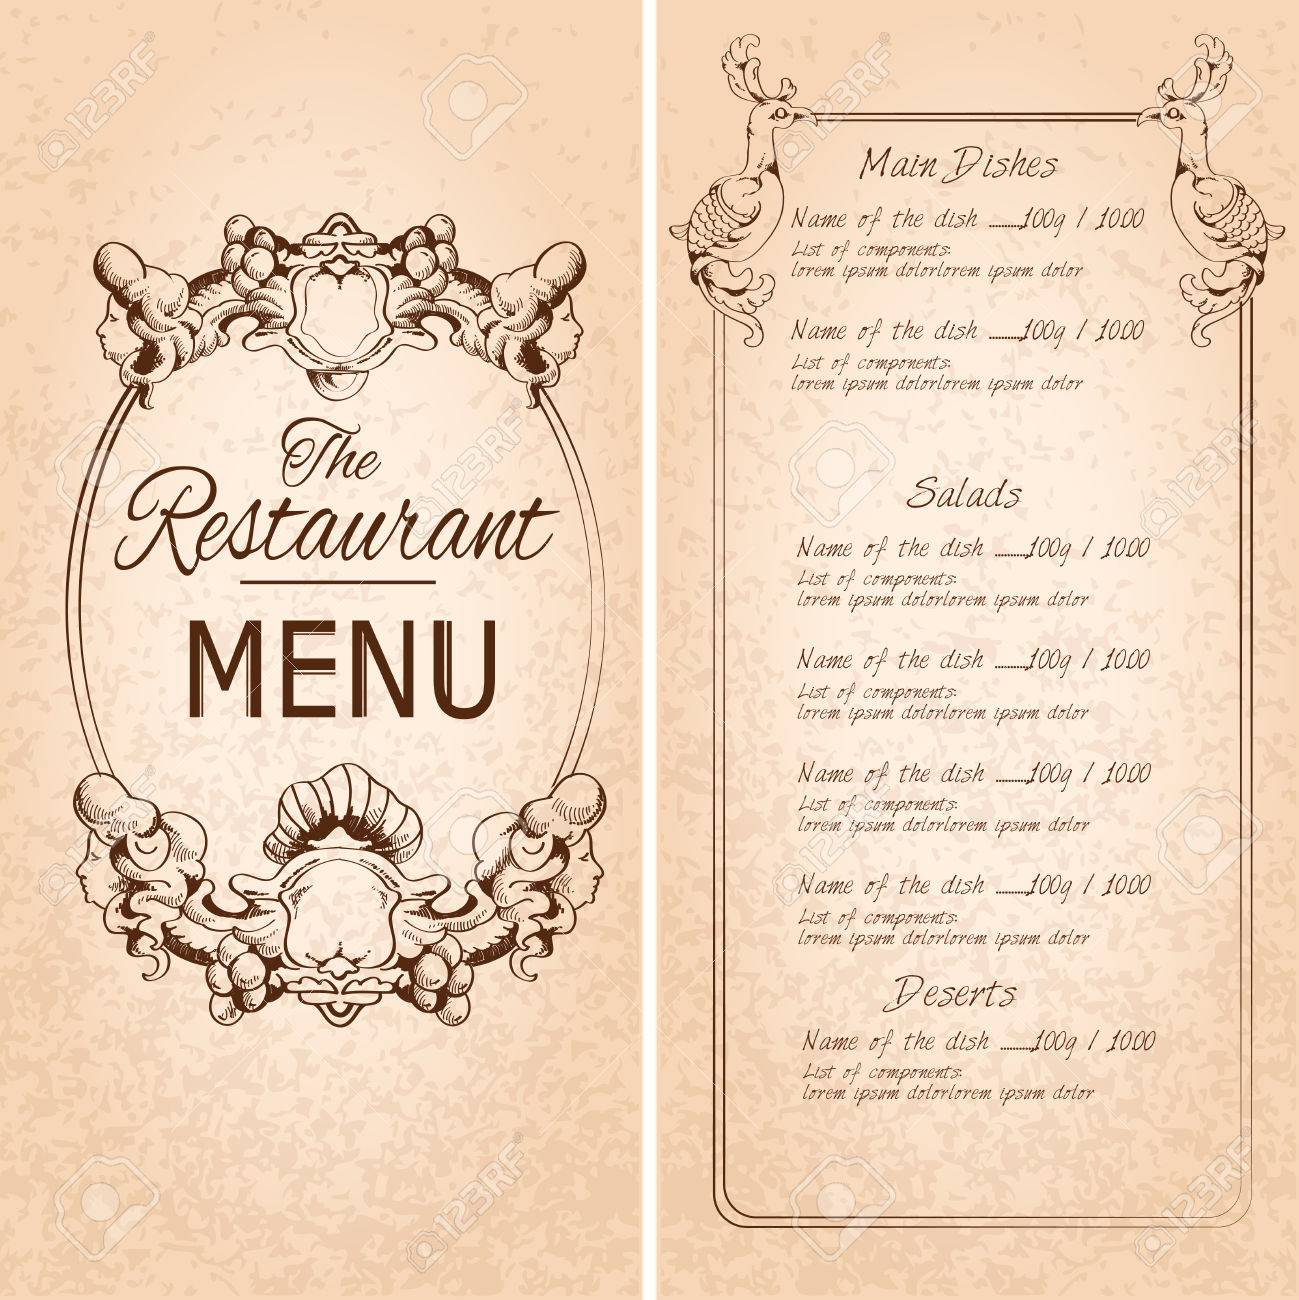 Retro Vintage Restaurant Menu Template With Frame And Decoration ...